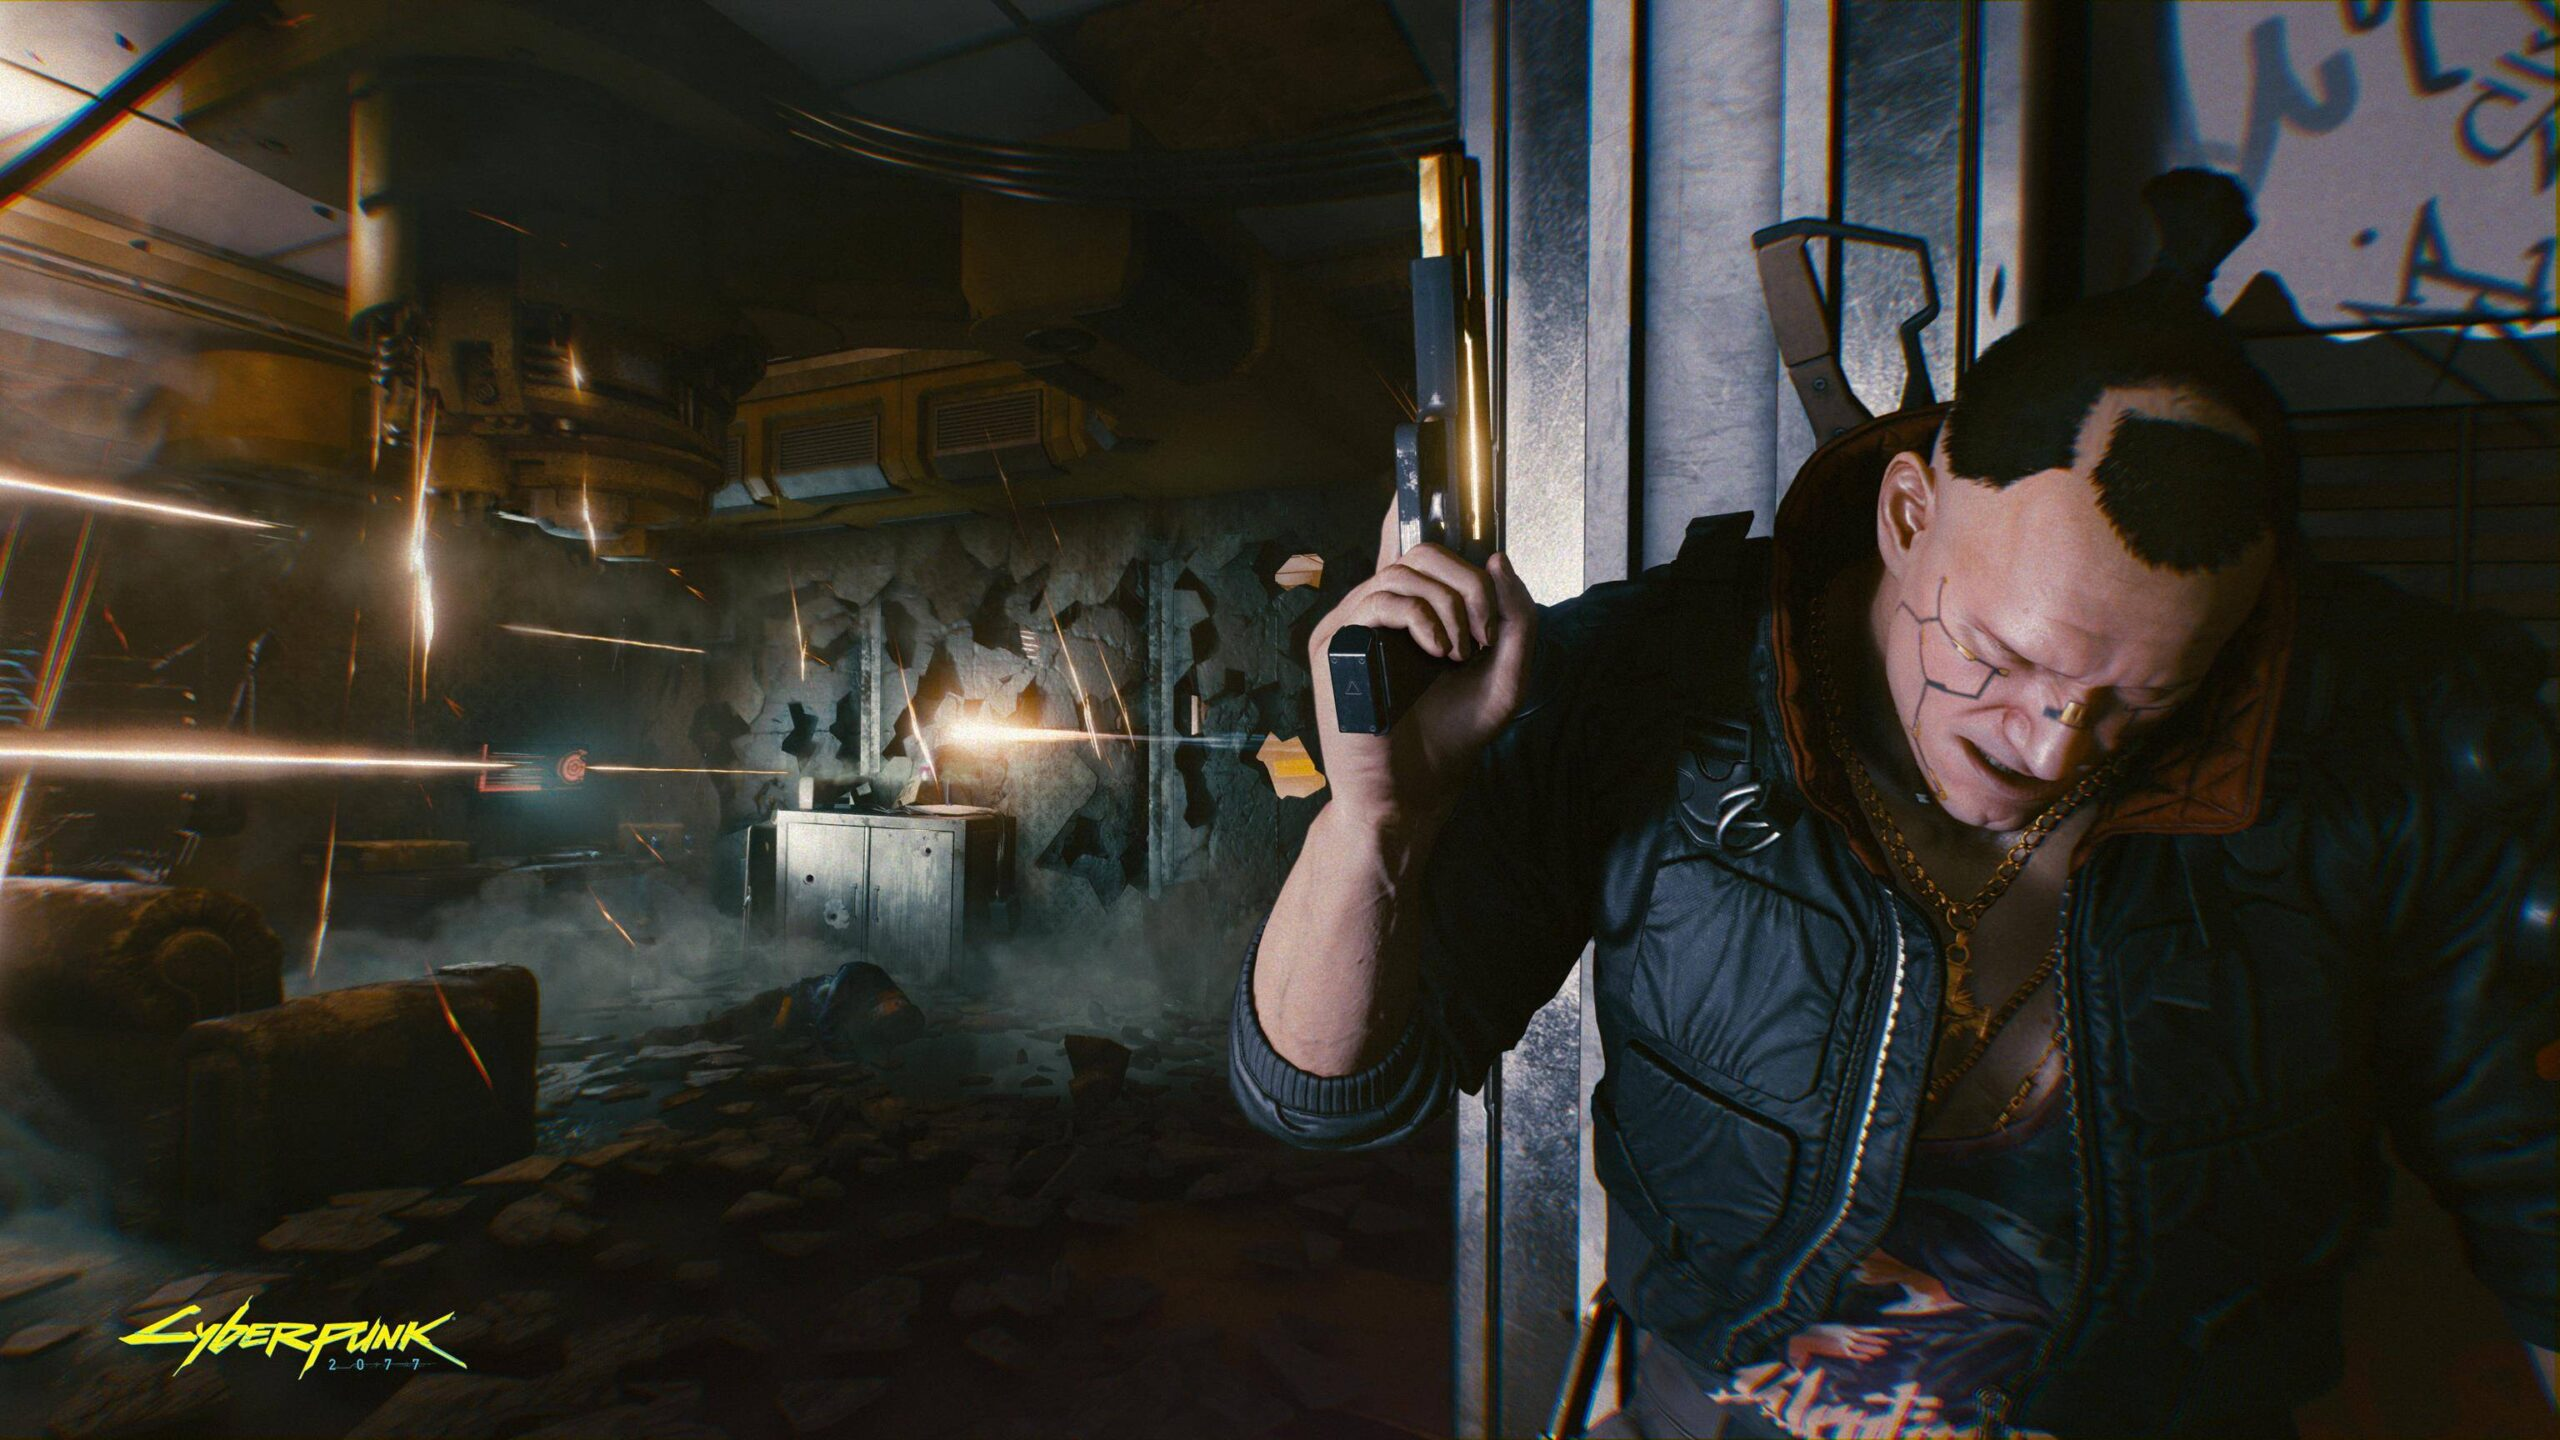 cyberpunk-2077-gets-patch-v1.1-on-pc-and-consoles-–-but-some-gamers-aren't-happy